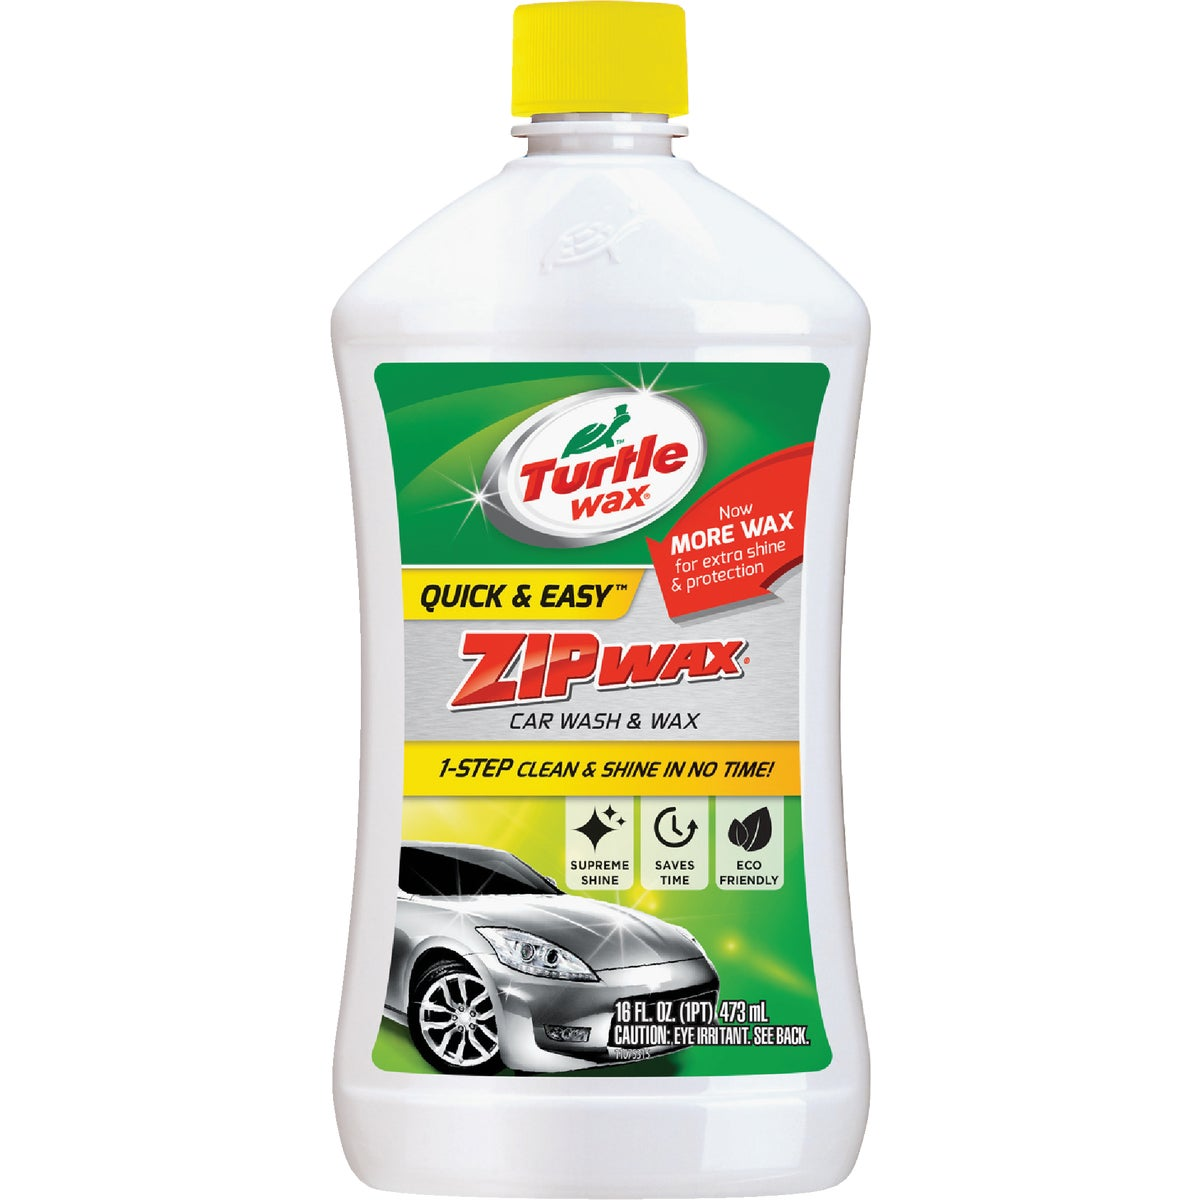 16OZ LIQUID CAR WASH